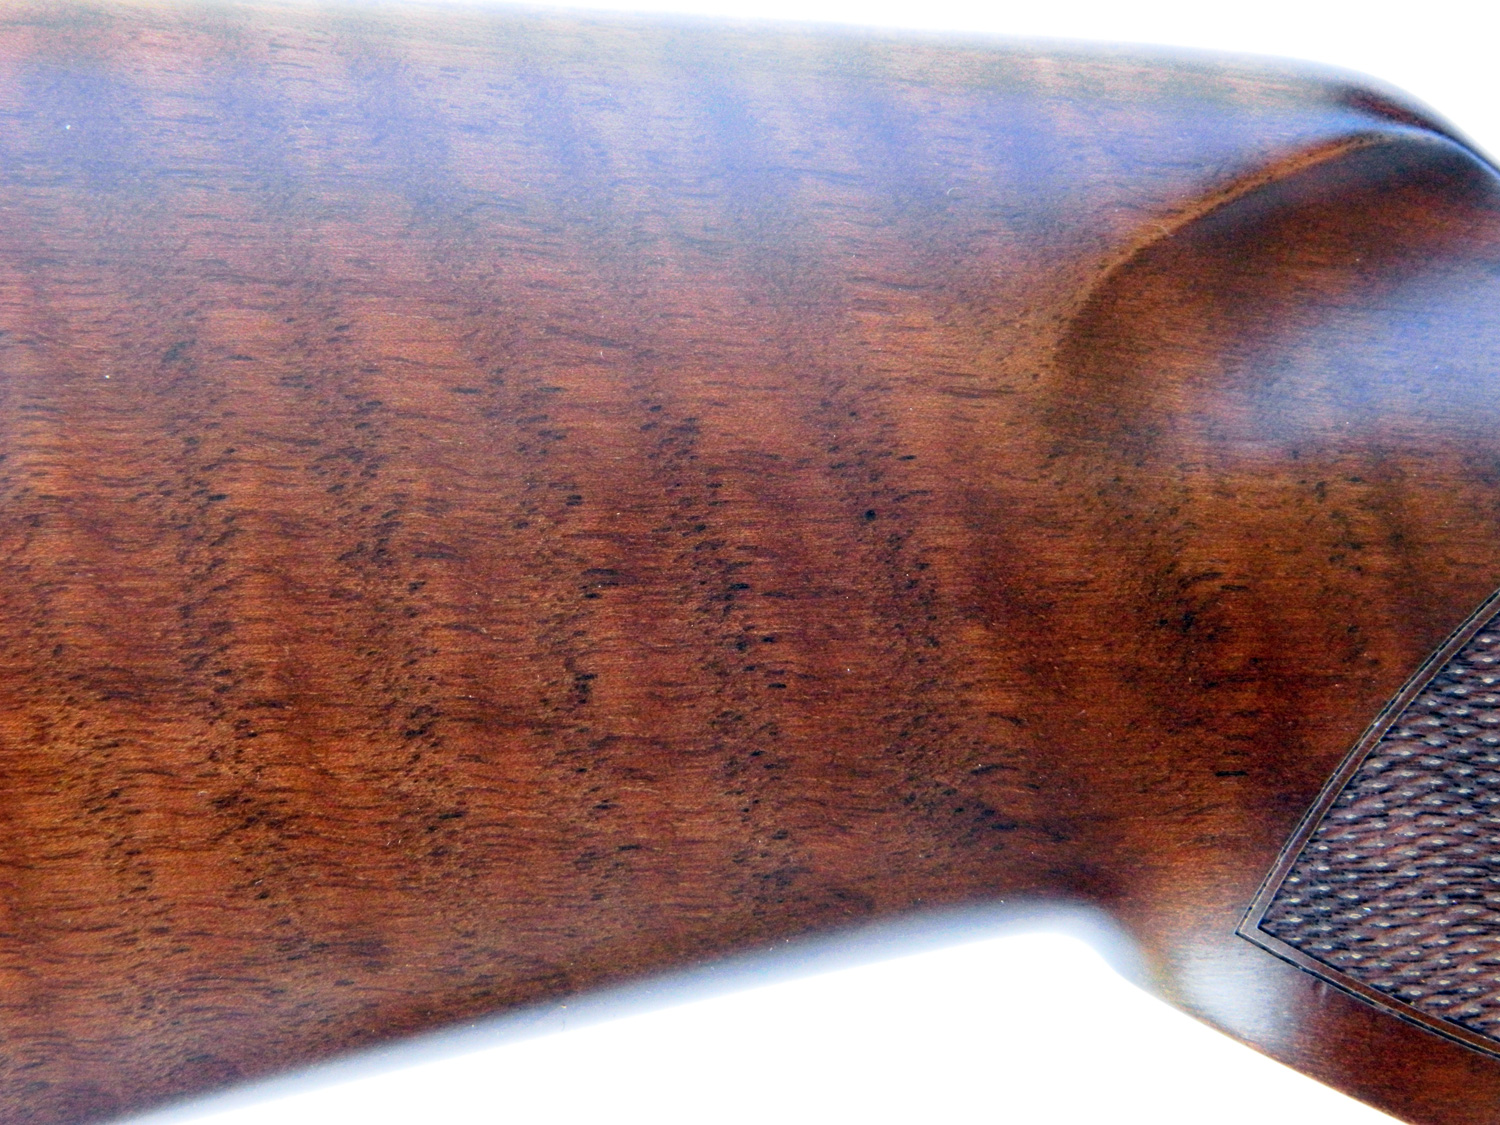 Closeup view of the wood grain of a rifle stock